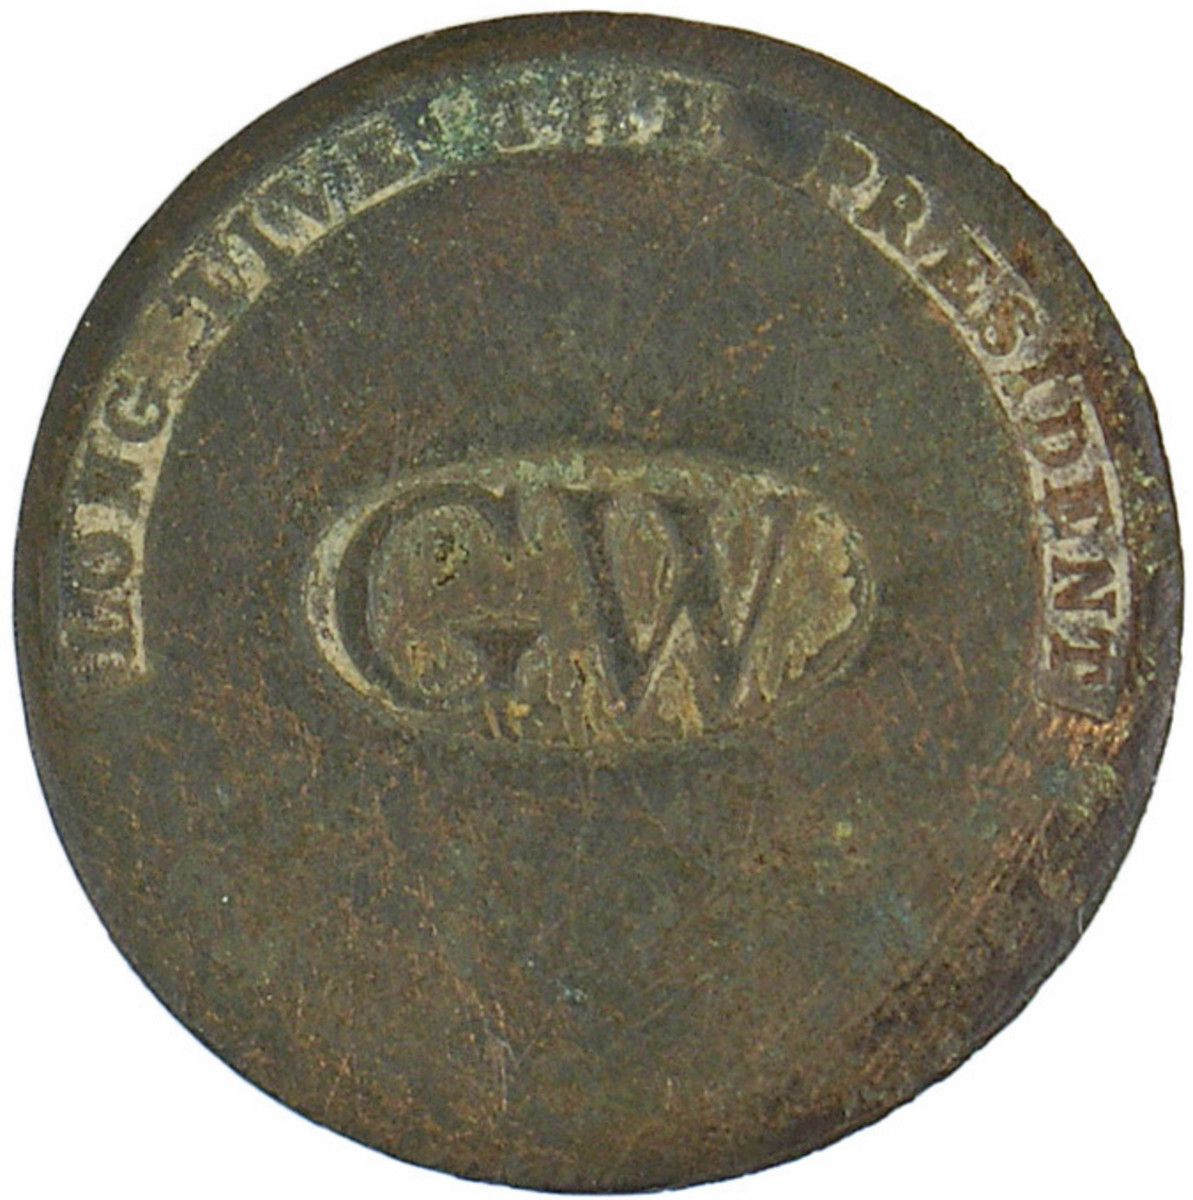 Flat copper button from the inauguration of George Washington, 34mm (Opening bid: $1,250).